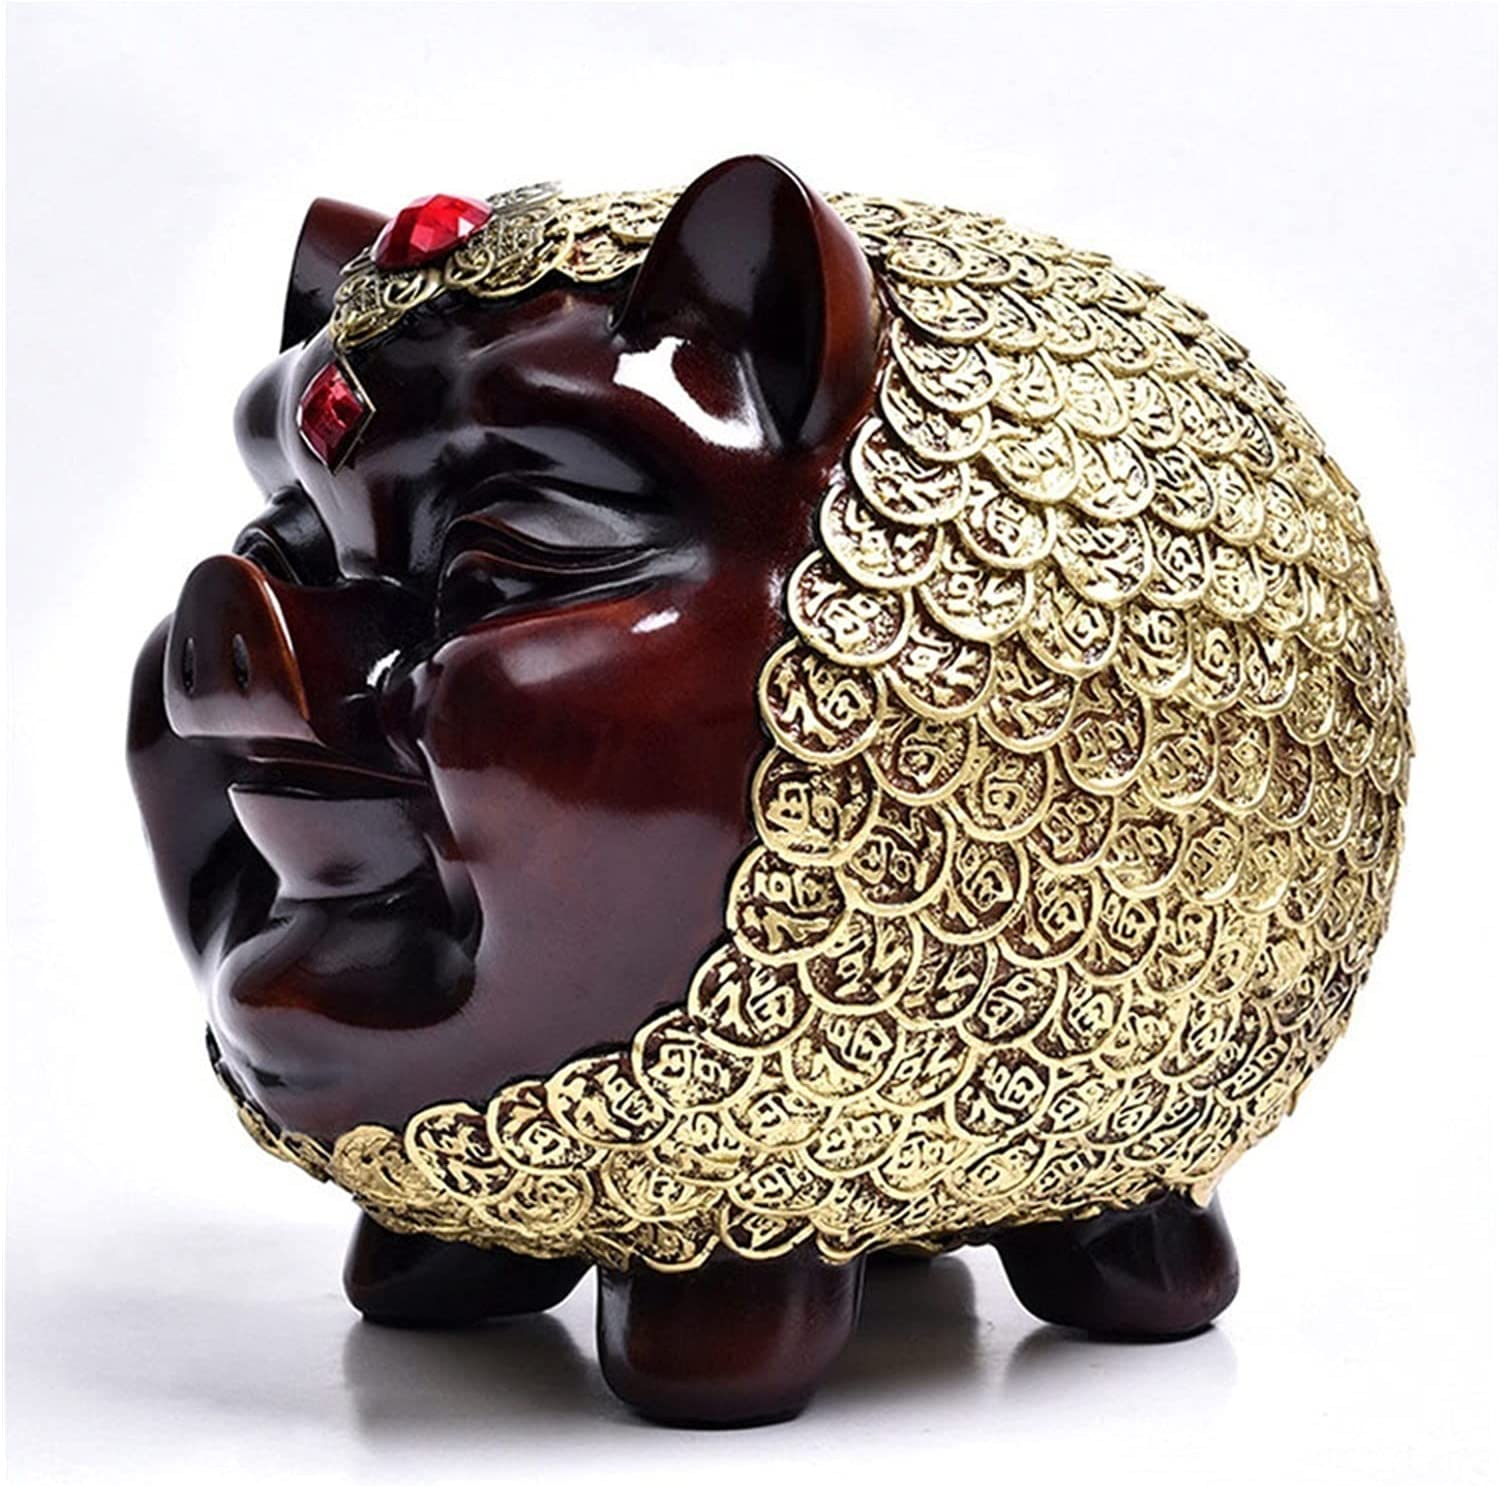 YYDMBH Piggy Bank Vintage Resin Special price for a limited time Fi Pig Box New mail order Money Coin